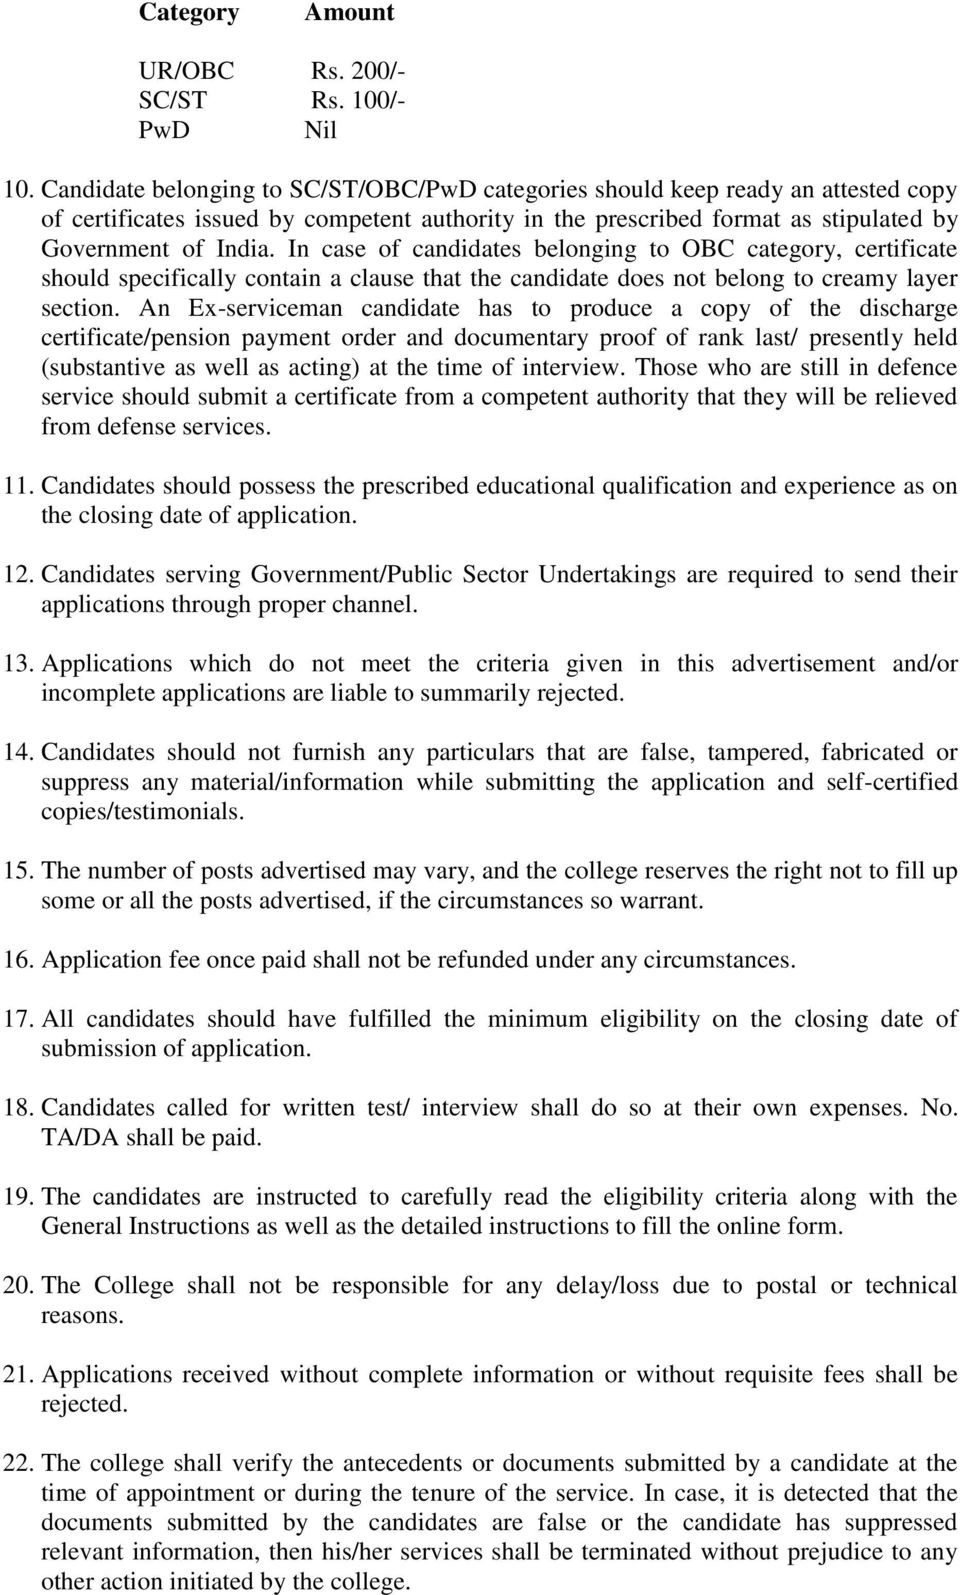 In case of candidates belonging to OBC category, certificate should specifically contain a clause that the candidate does not belong to creamy layer section.